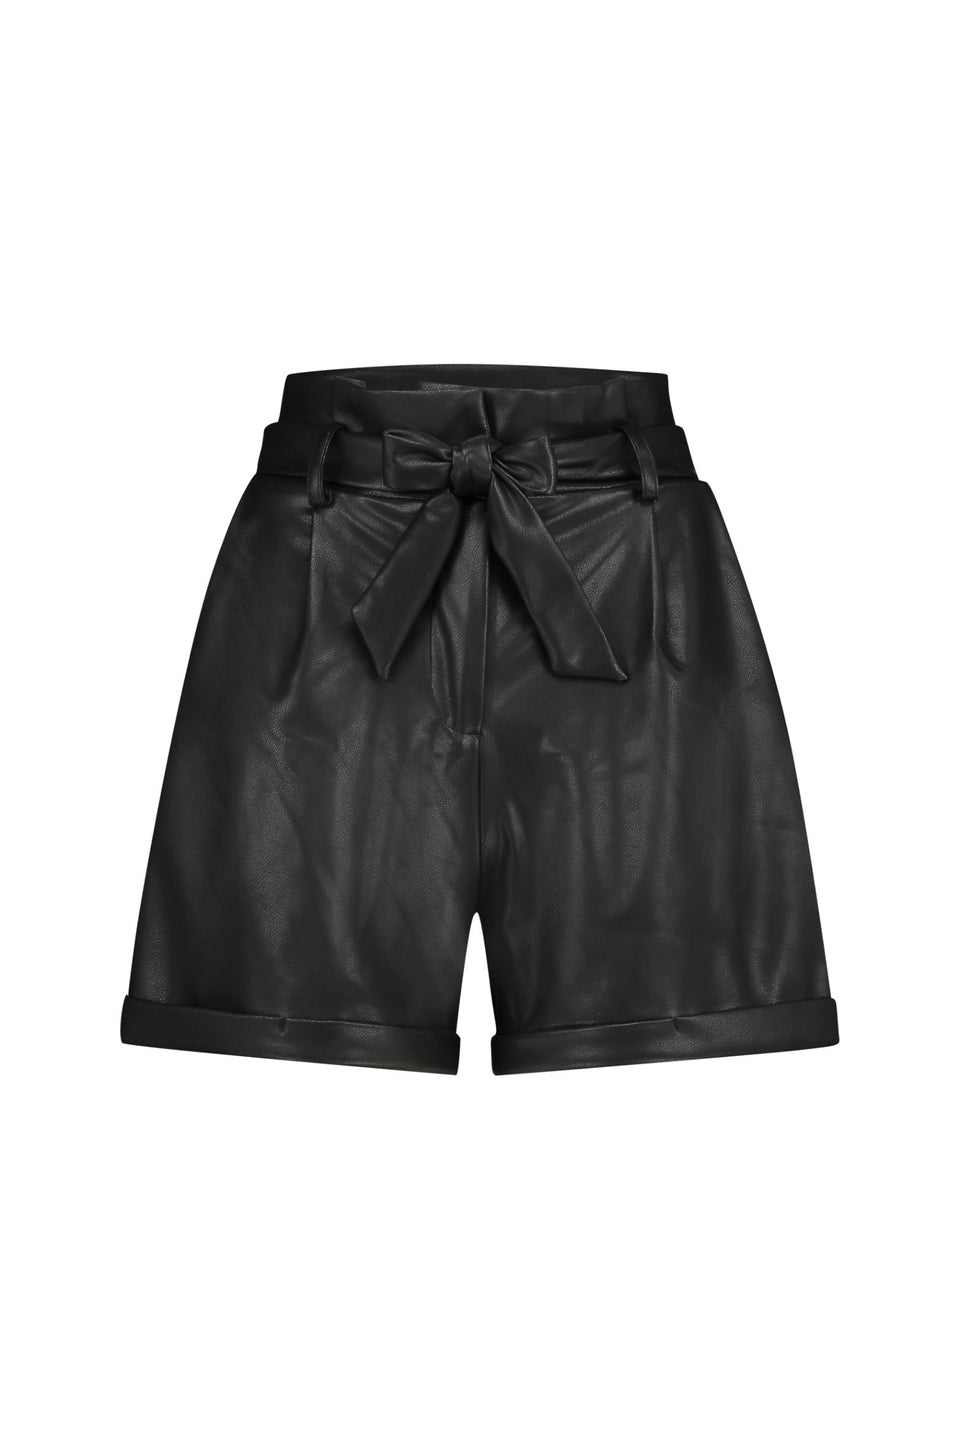 Peggy Short - Black